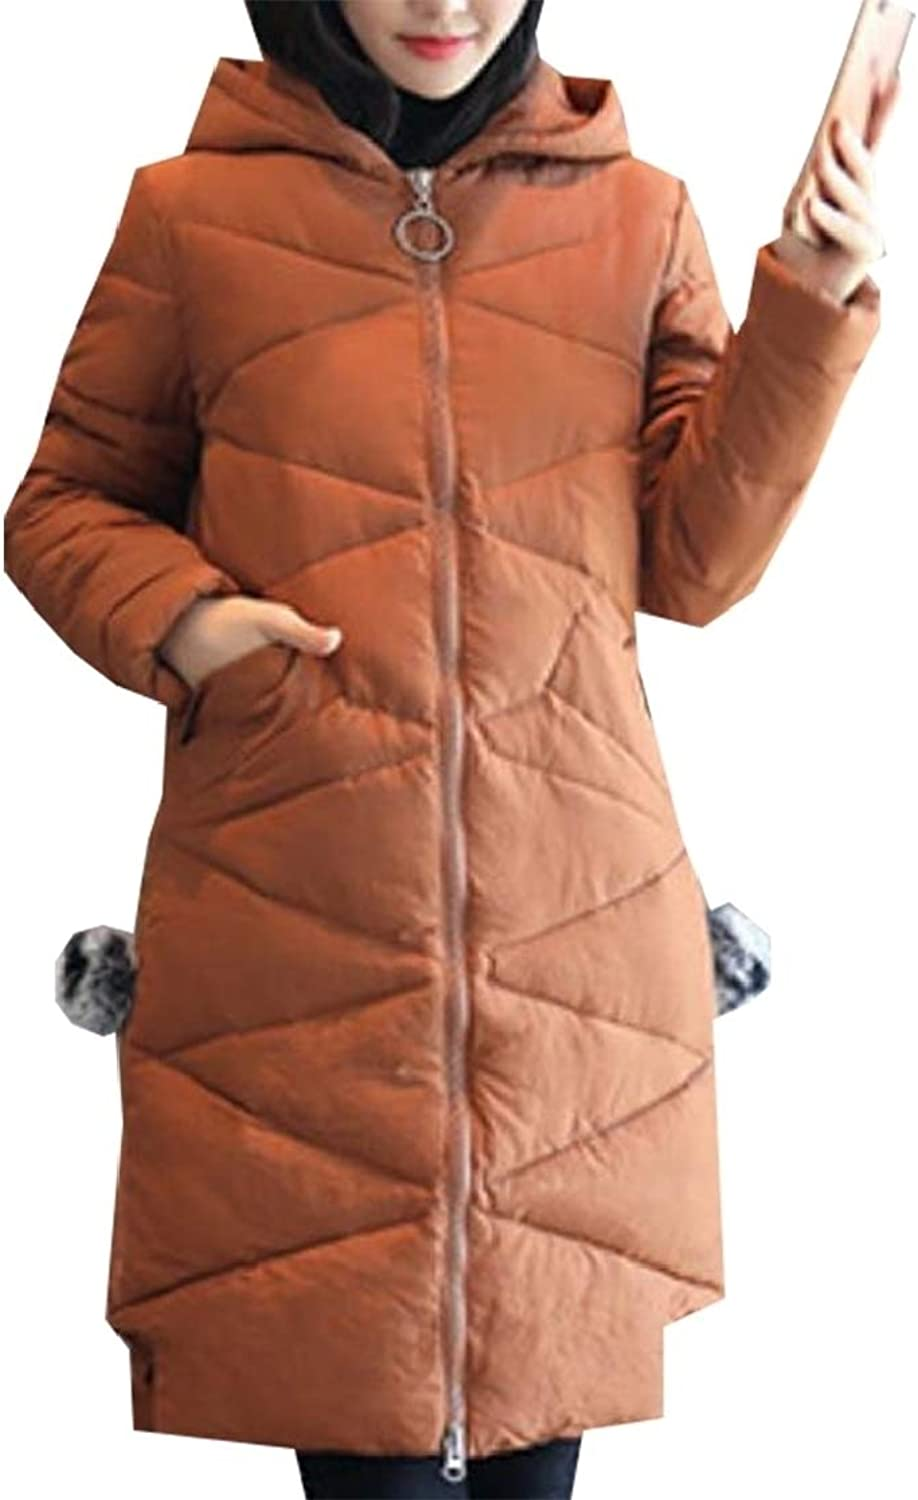 Emastor Women's Winter Solid color Thicken Plus Size Down Jacket Hooded Coat